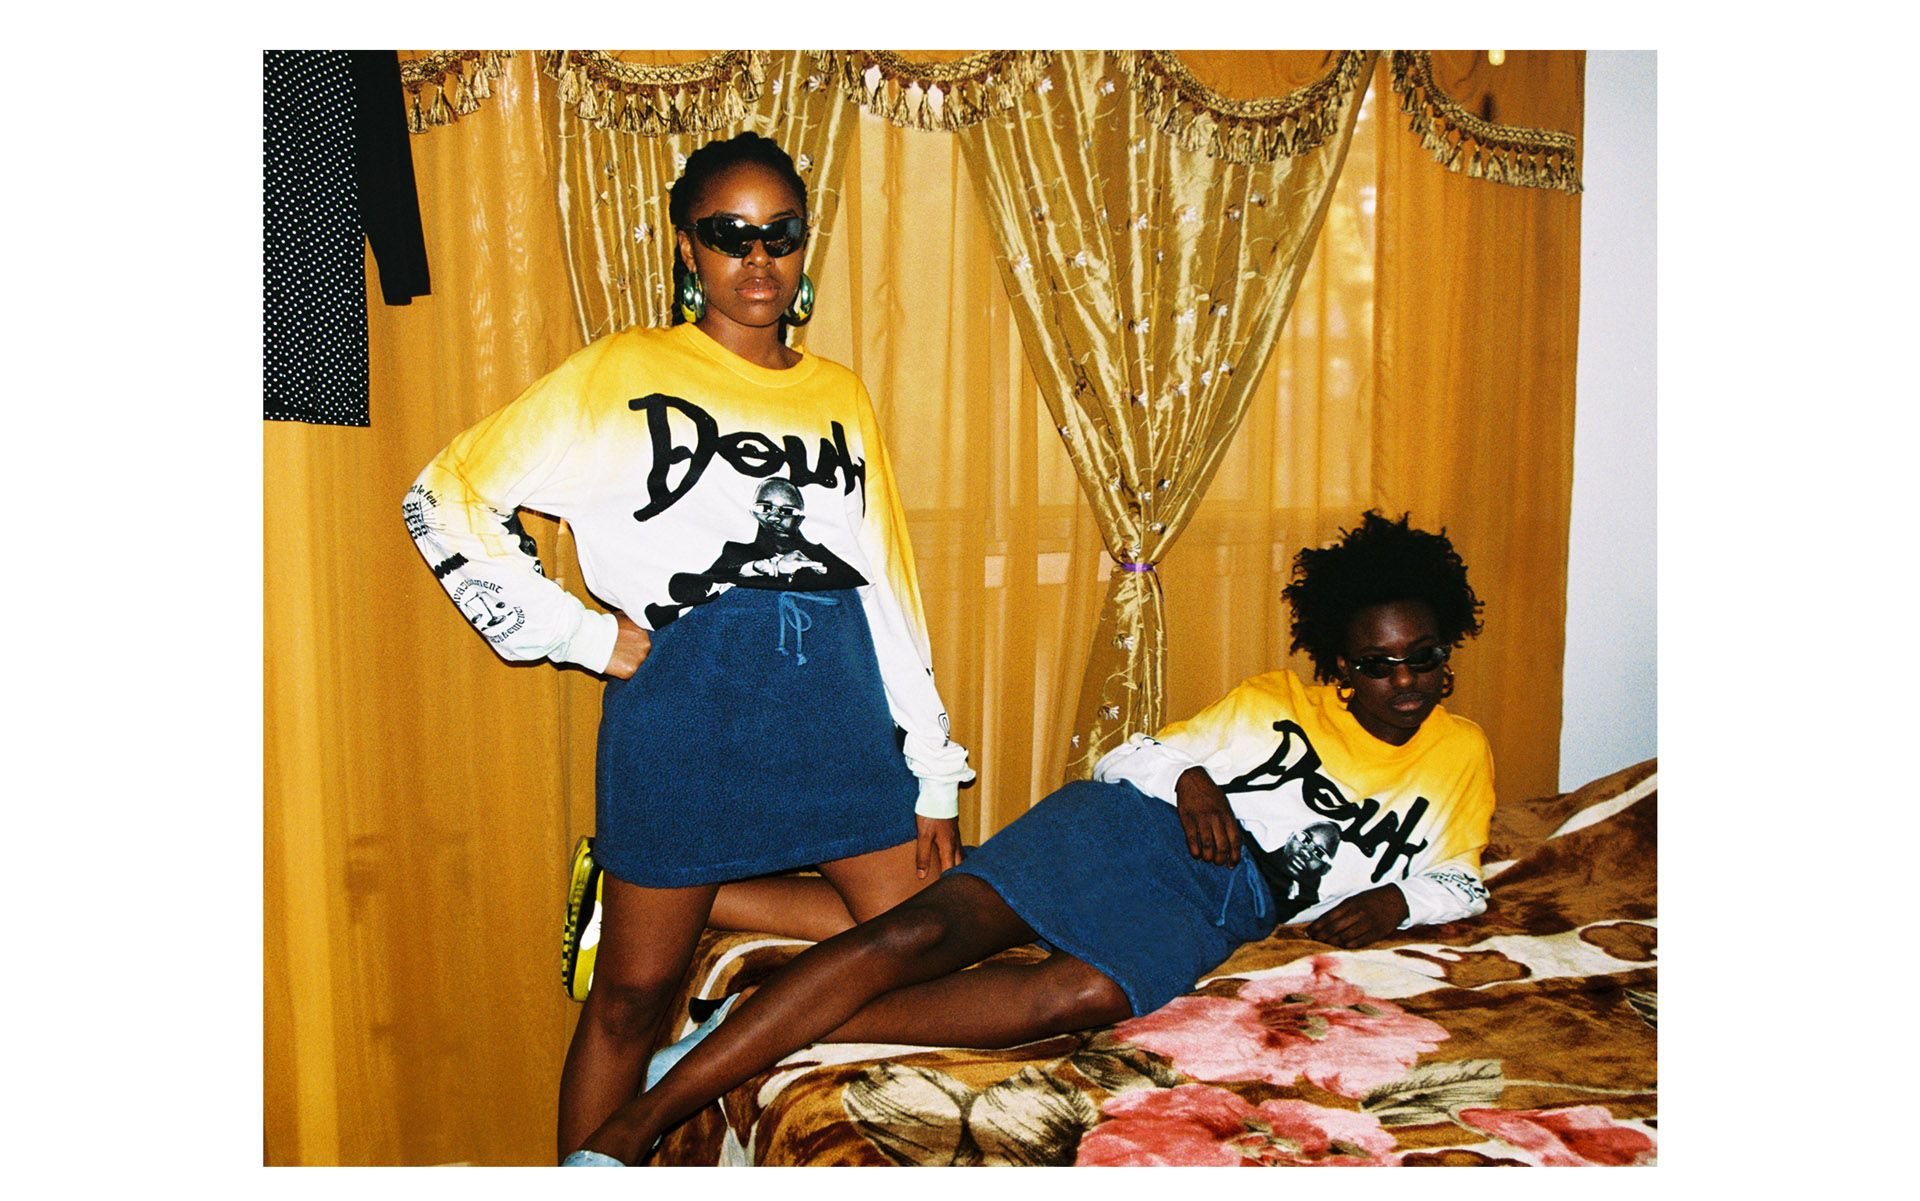 black girls models on bed by Oumayma B Tanfous for Moonshine international sapologie with Nataal